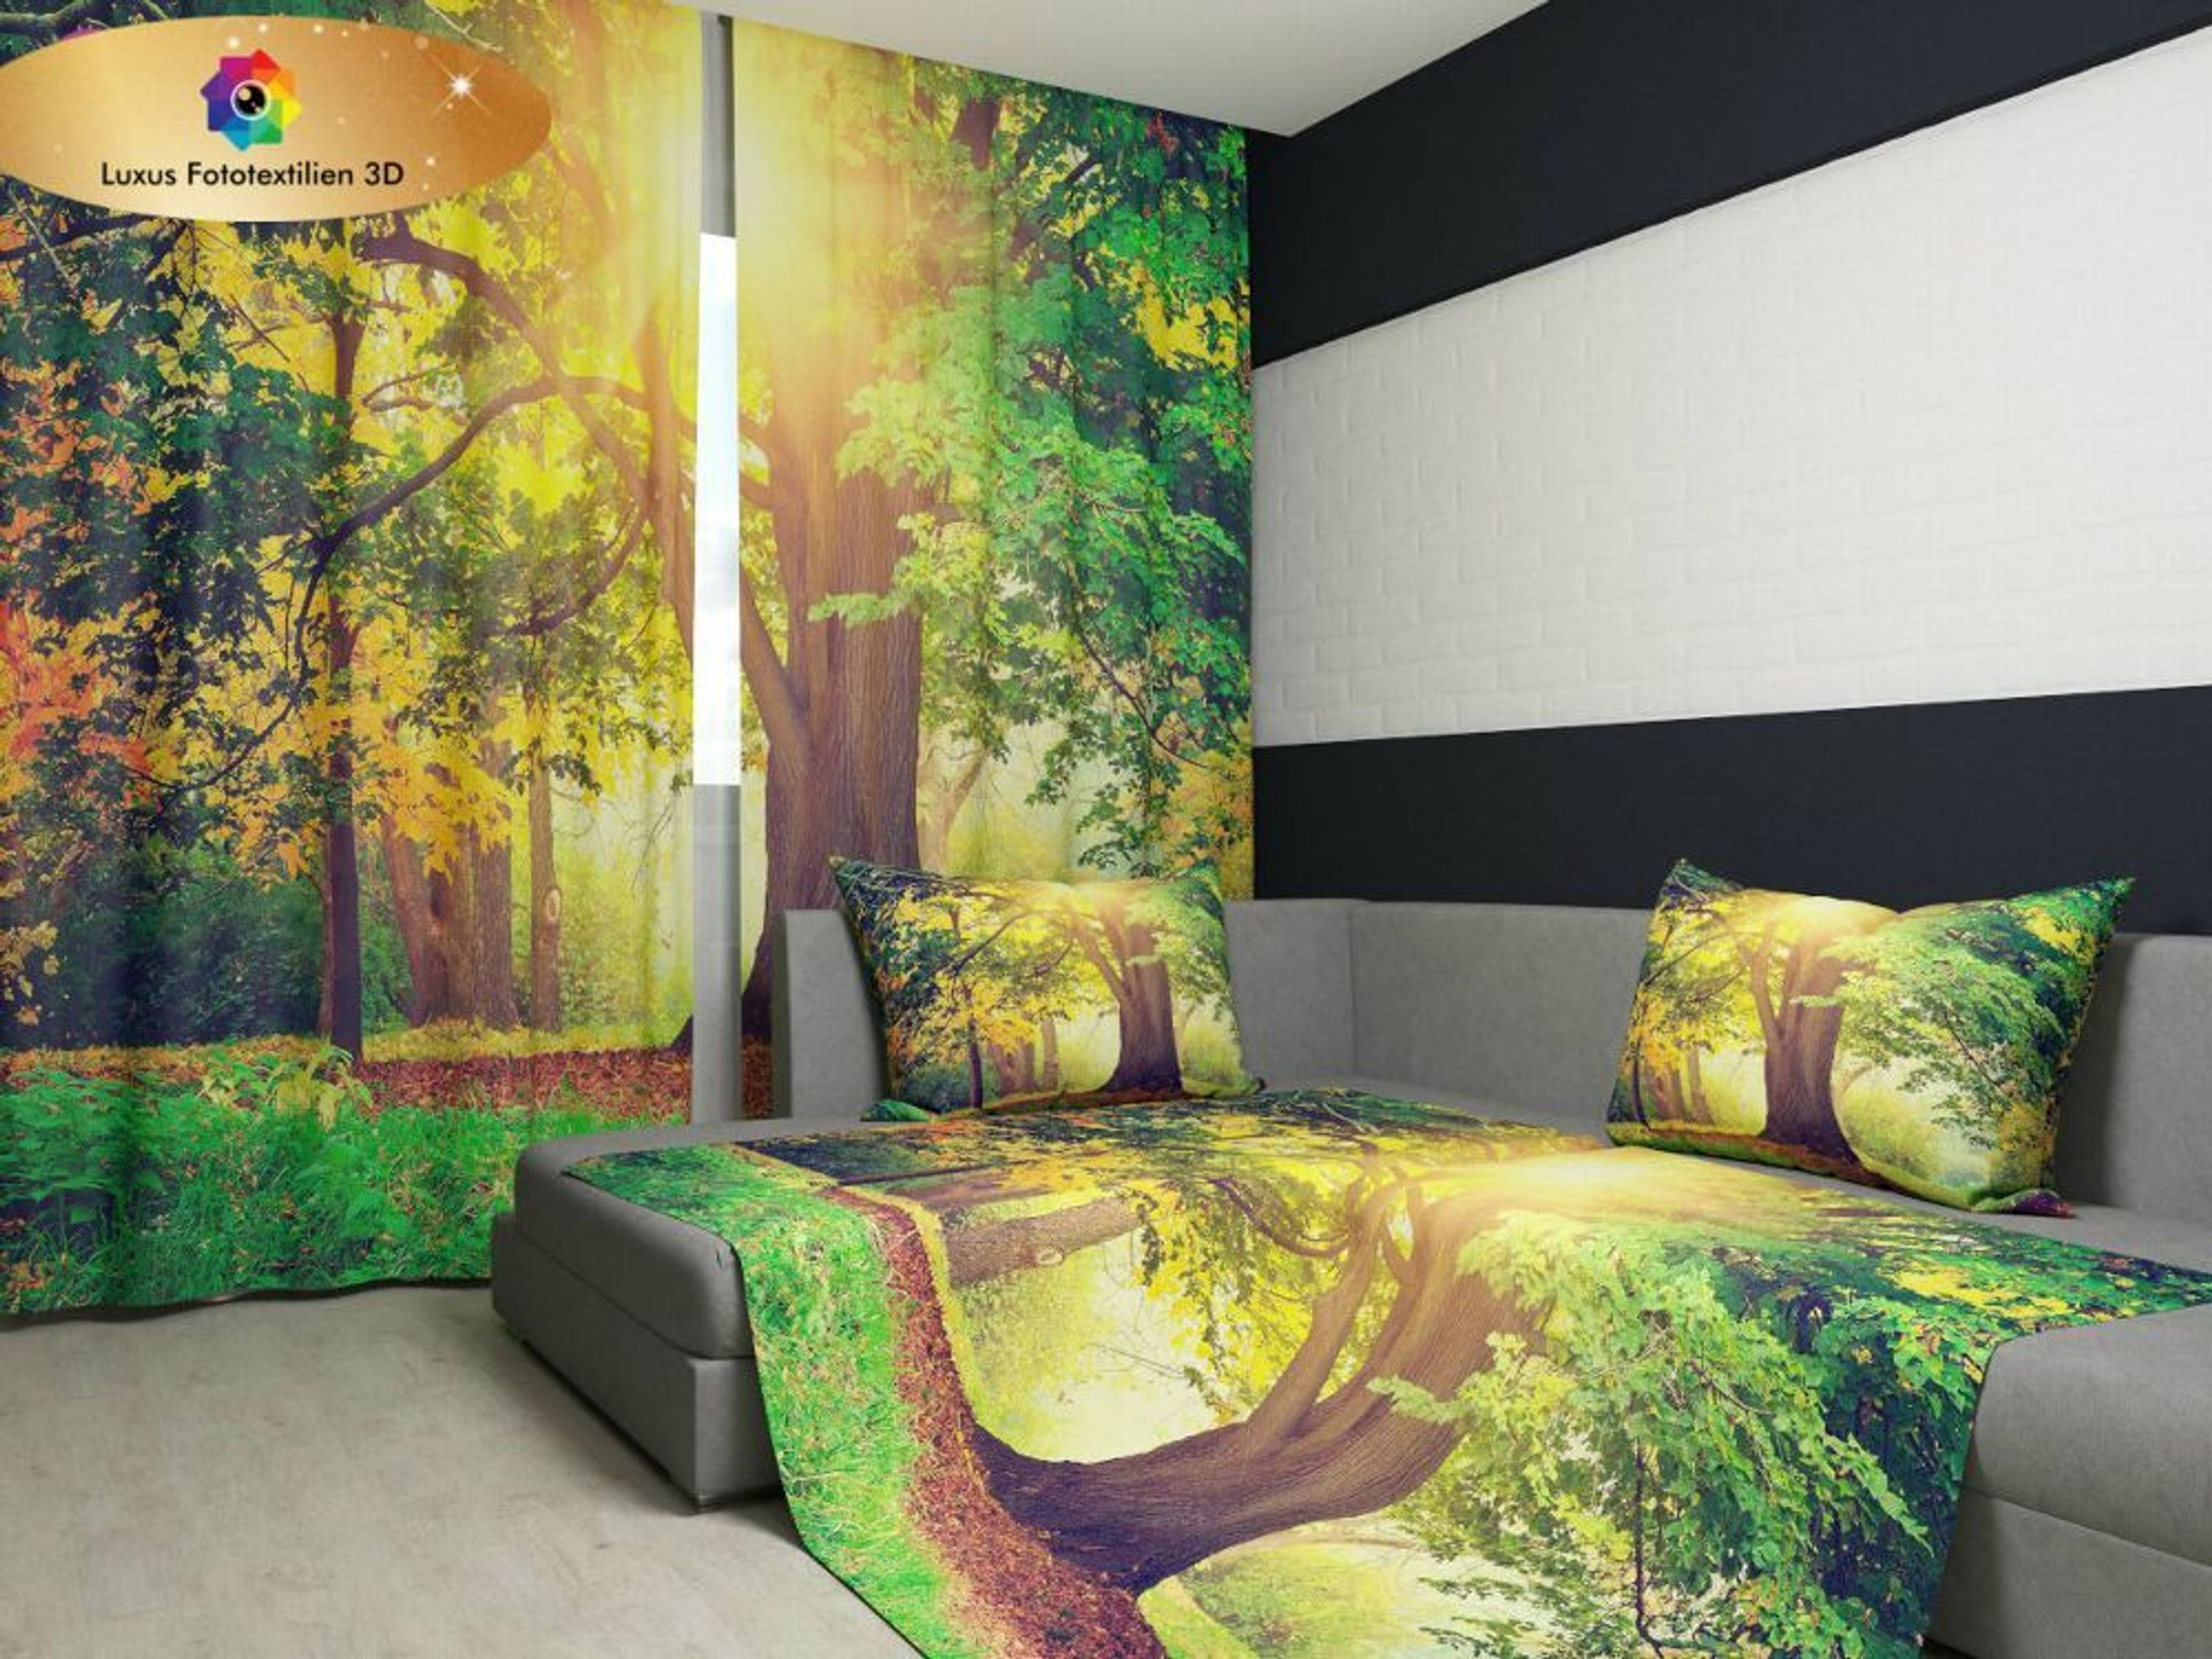 fotogardine 3d park foto vorhang gardinen in luxus. Black Bedroom Furniture Sets. Home Design Ideas